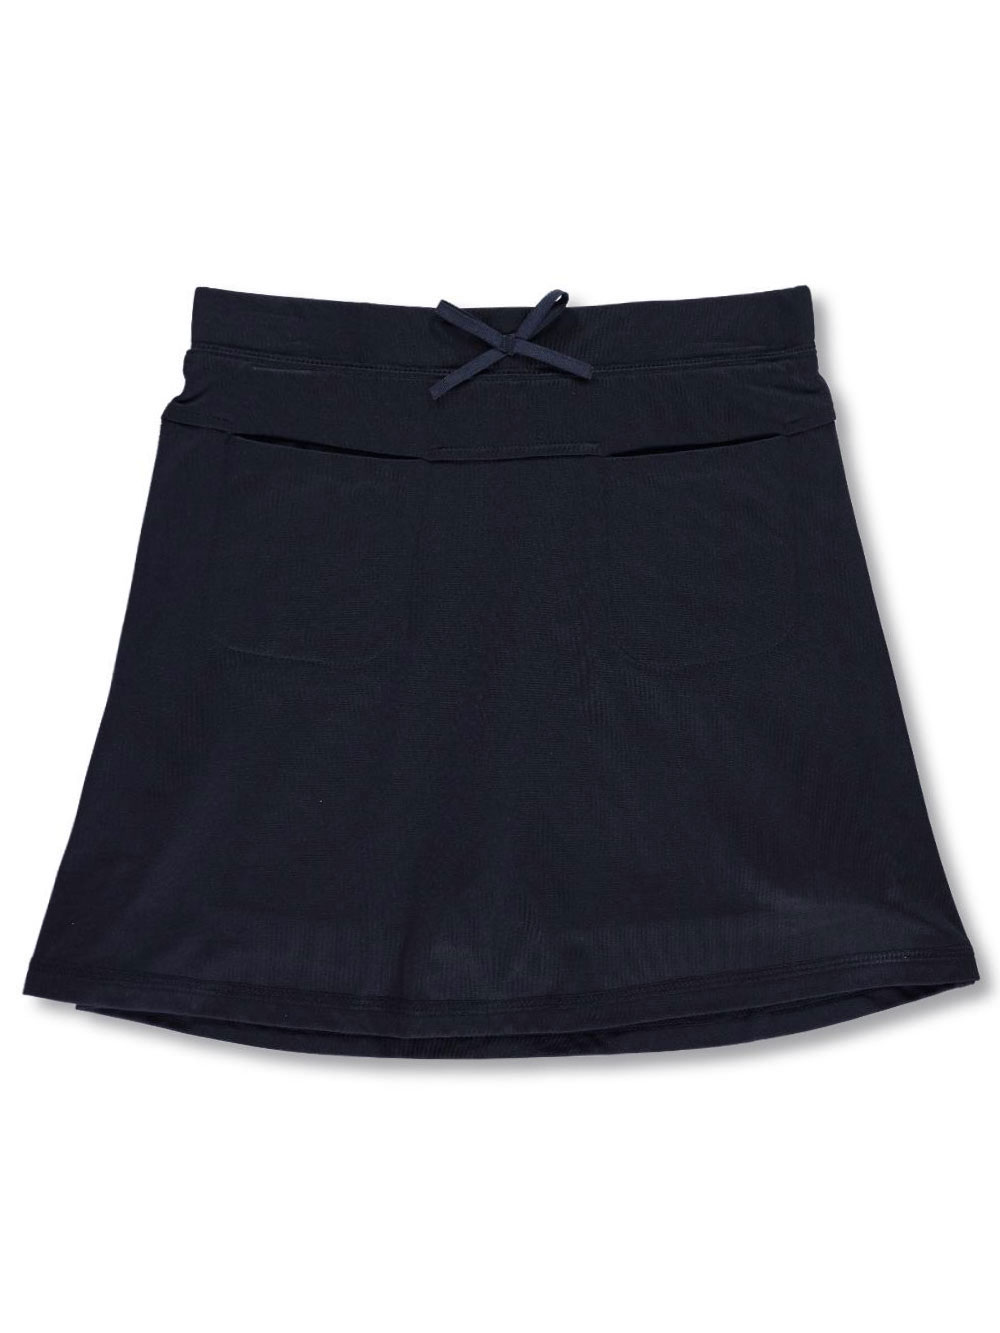 Shorts and Skorts Patch Pockets